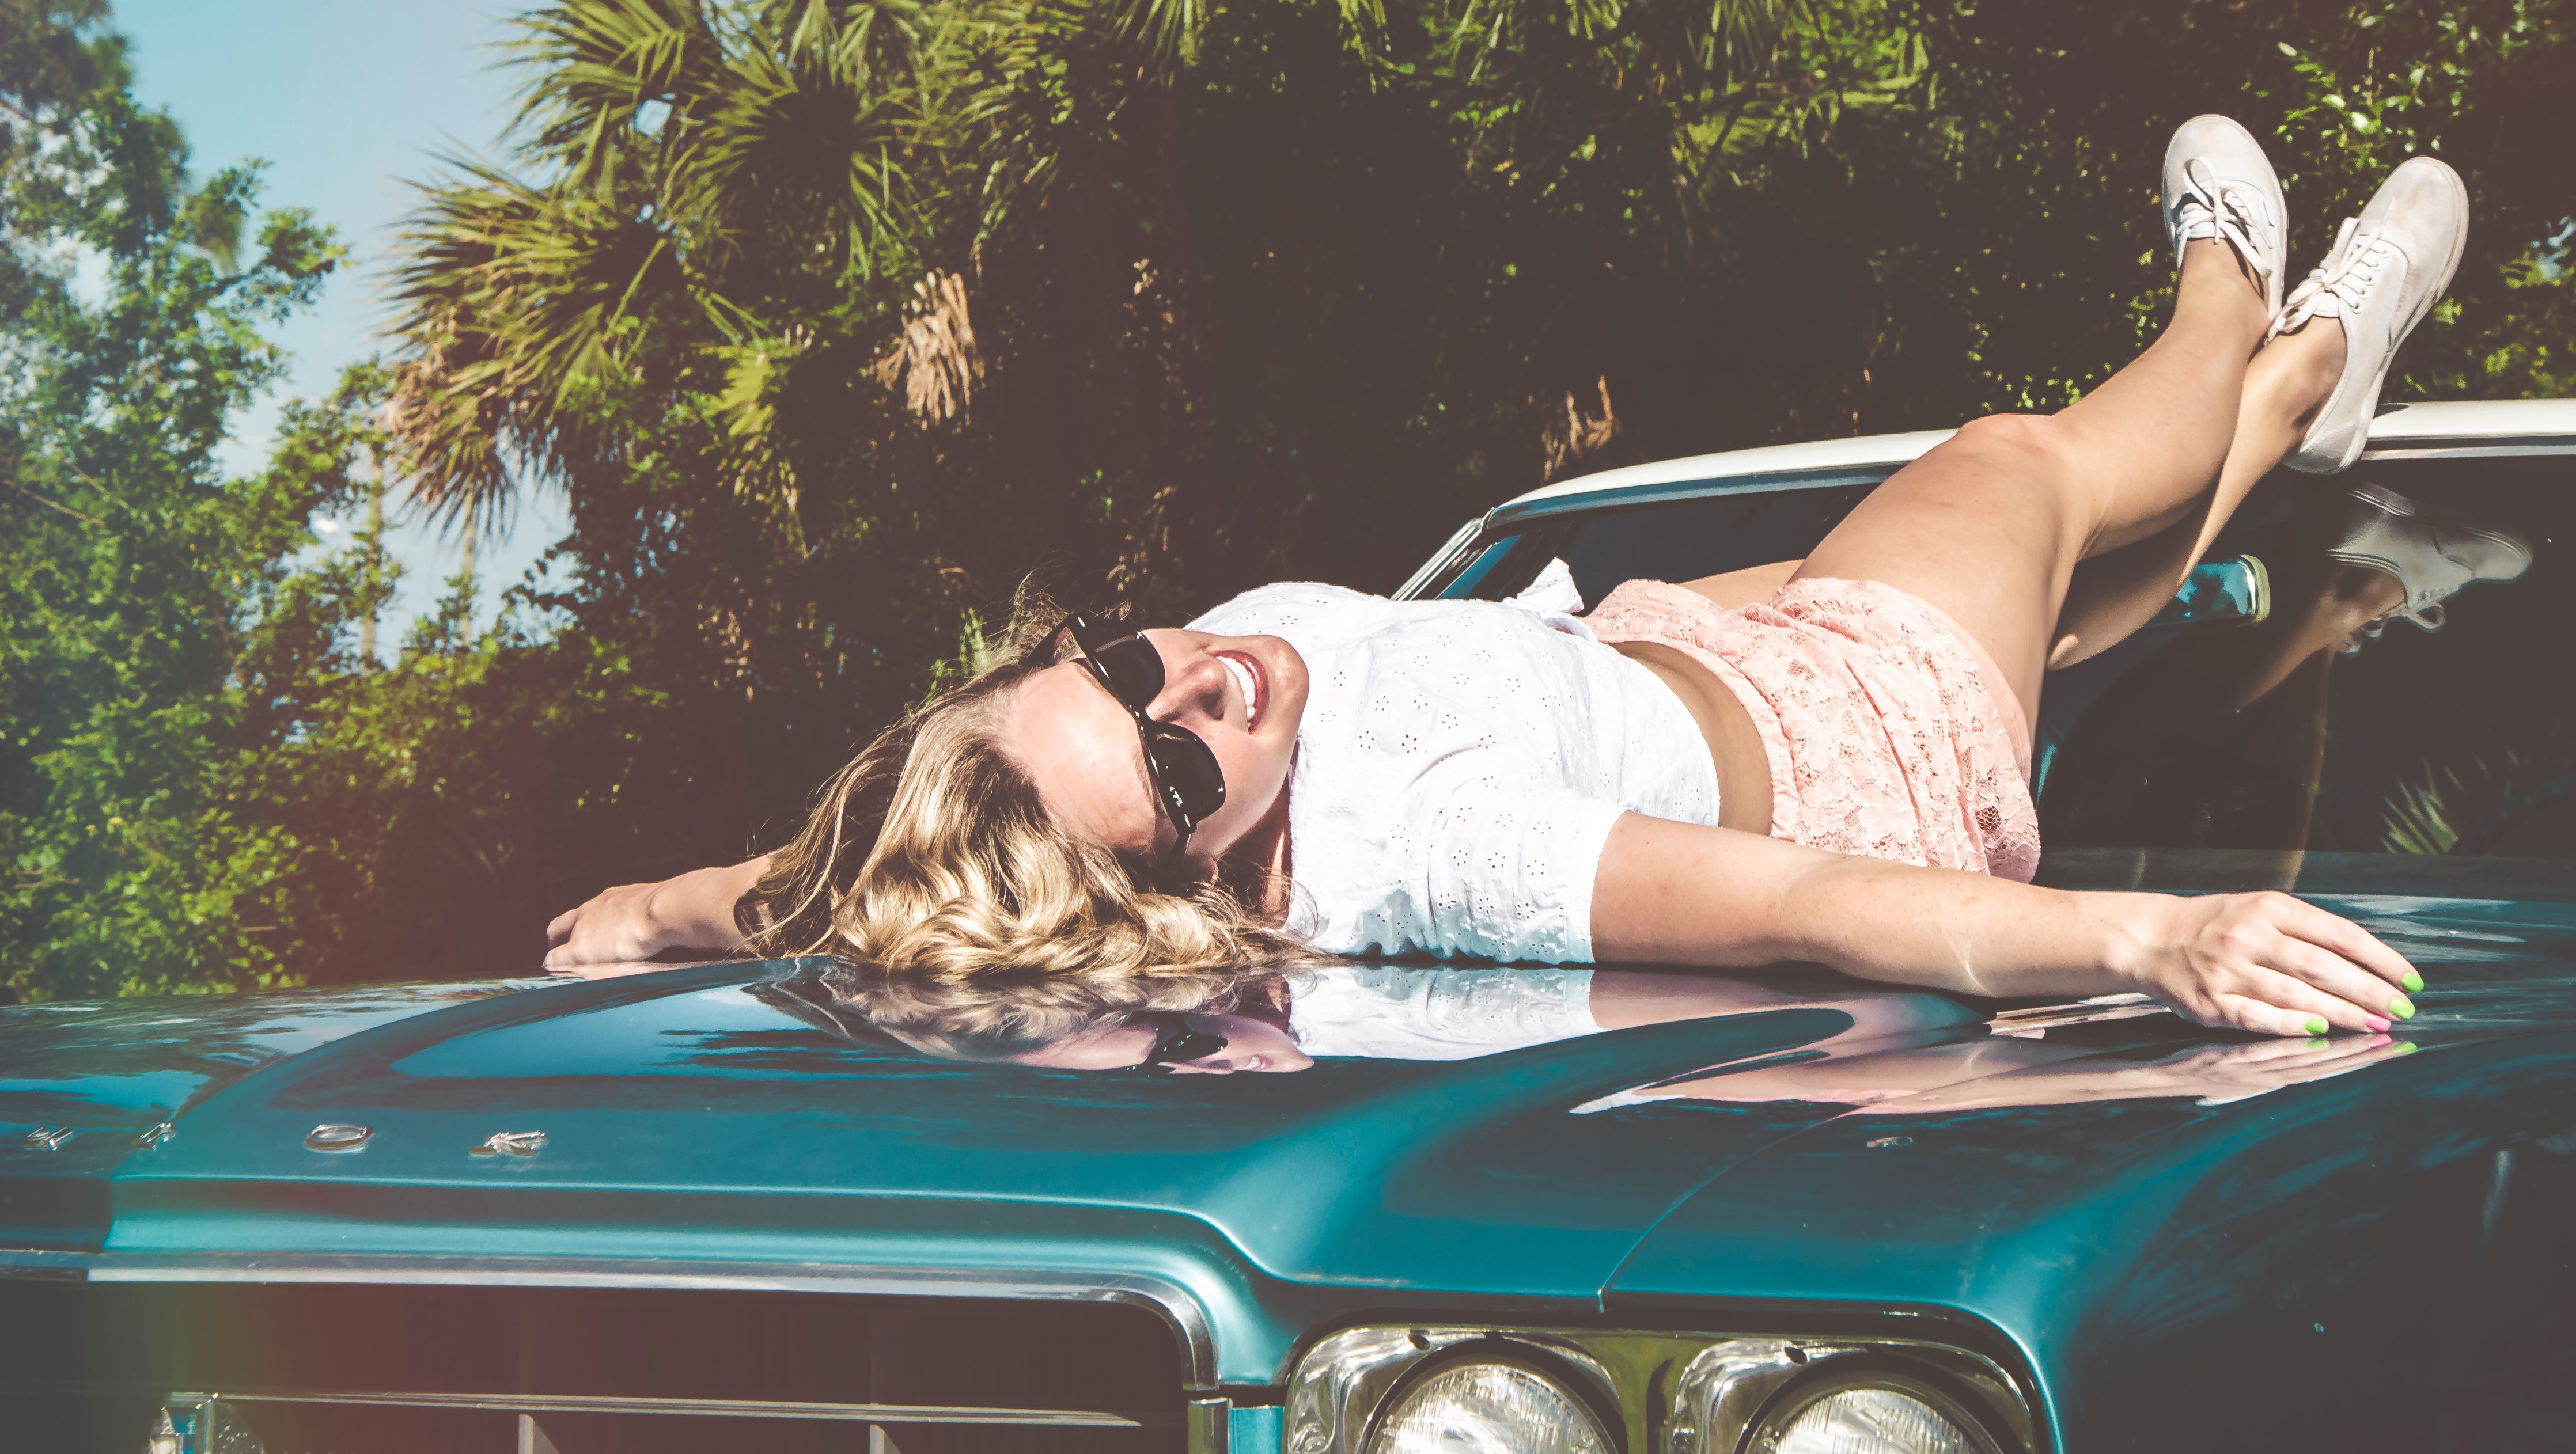 A woman lies on the hood of a car with her feet up on the car top